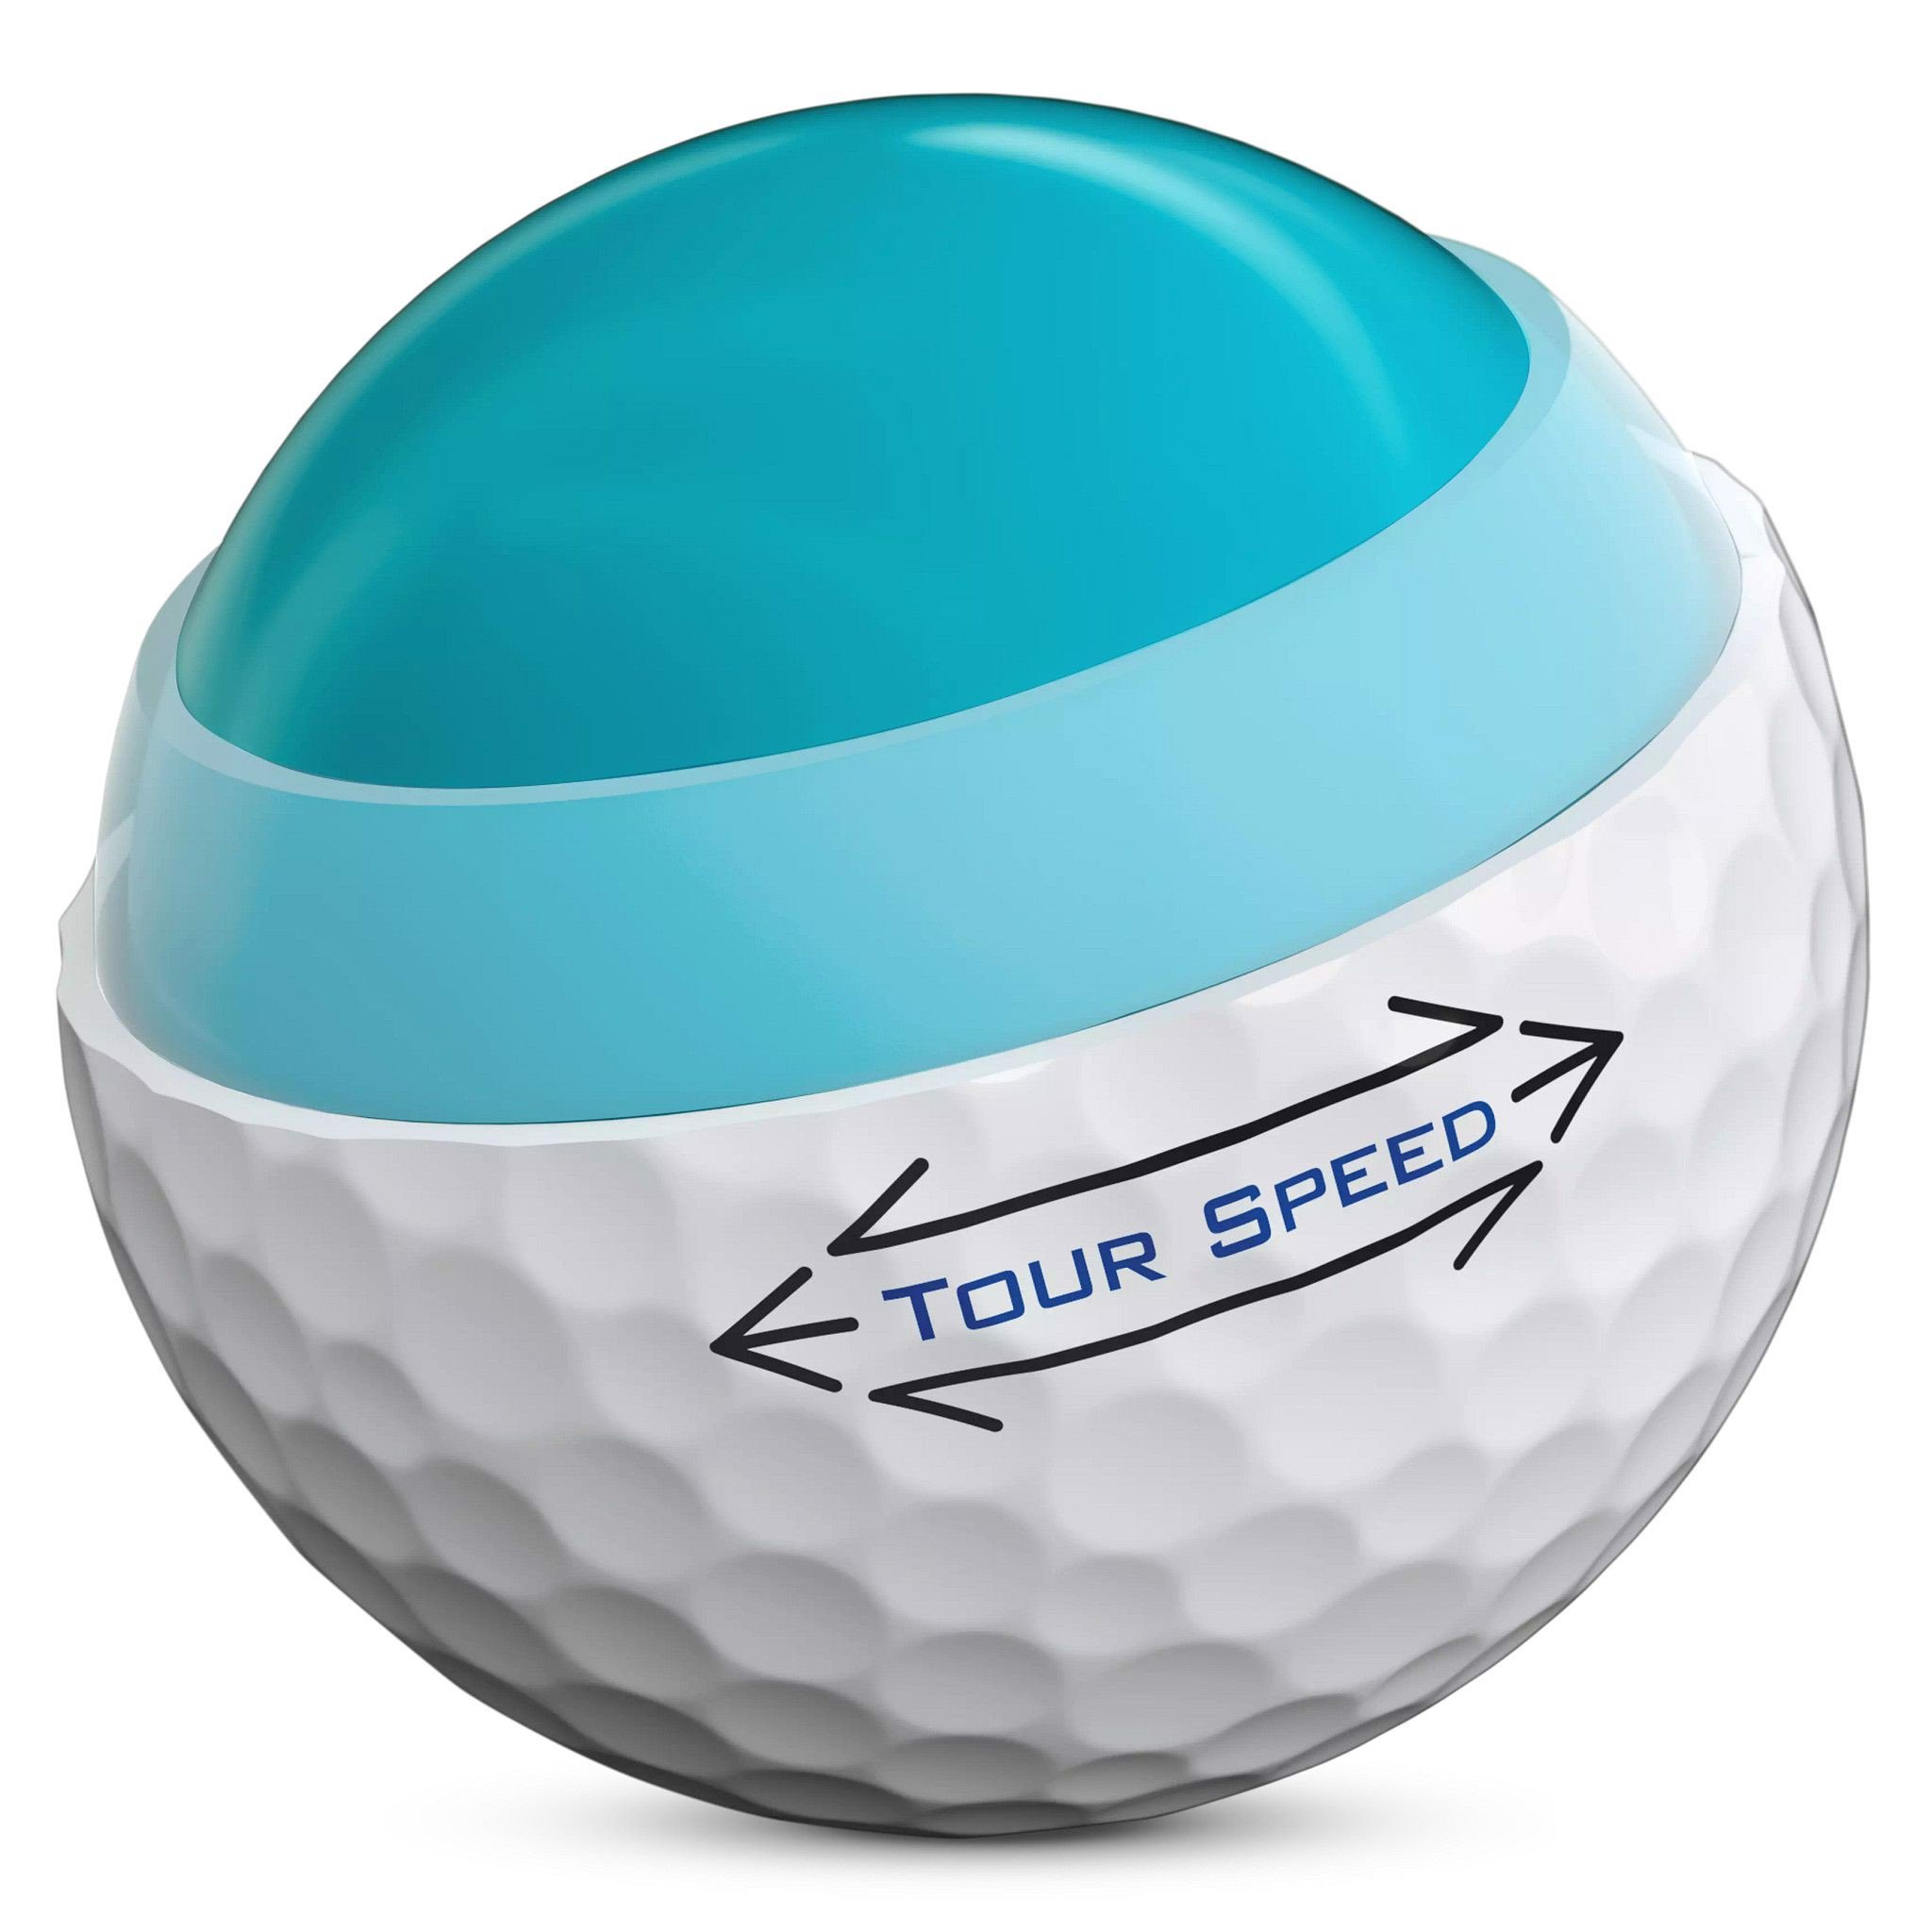 Bóng golf Tour Speed 3 lớp | Titleist